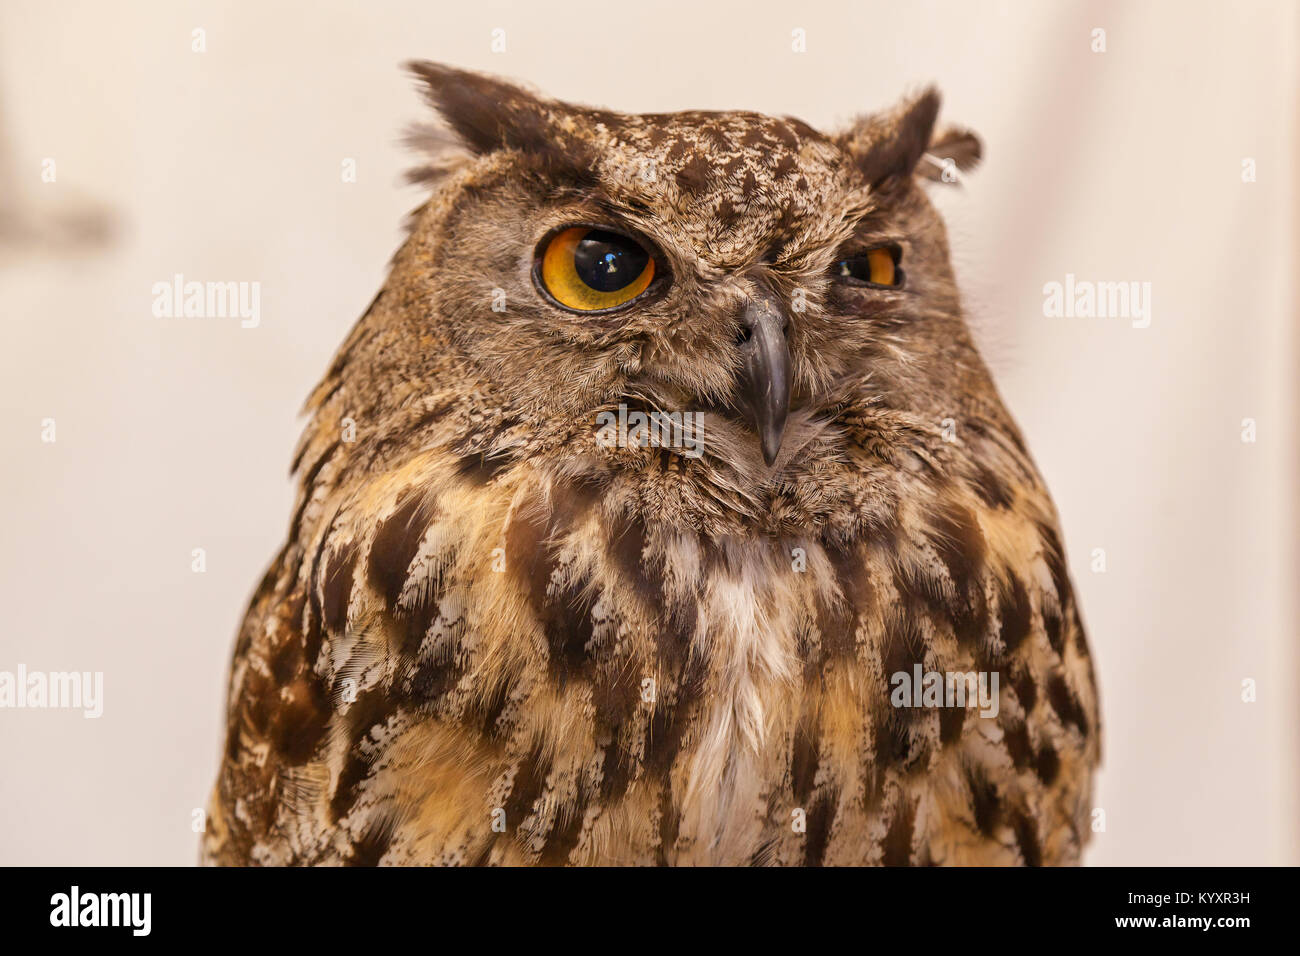 Owl in the white background. - Stock Image